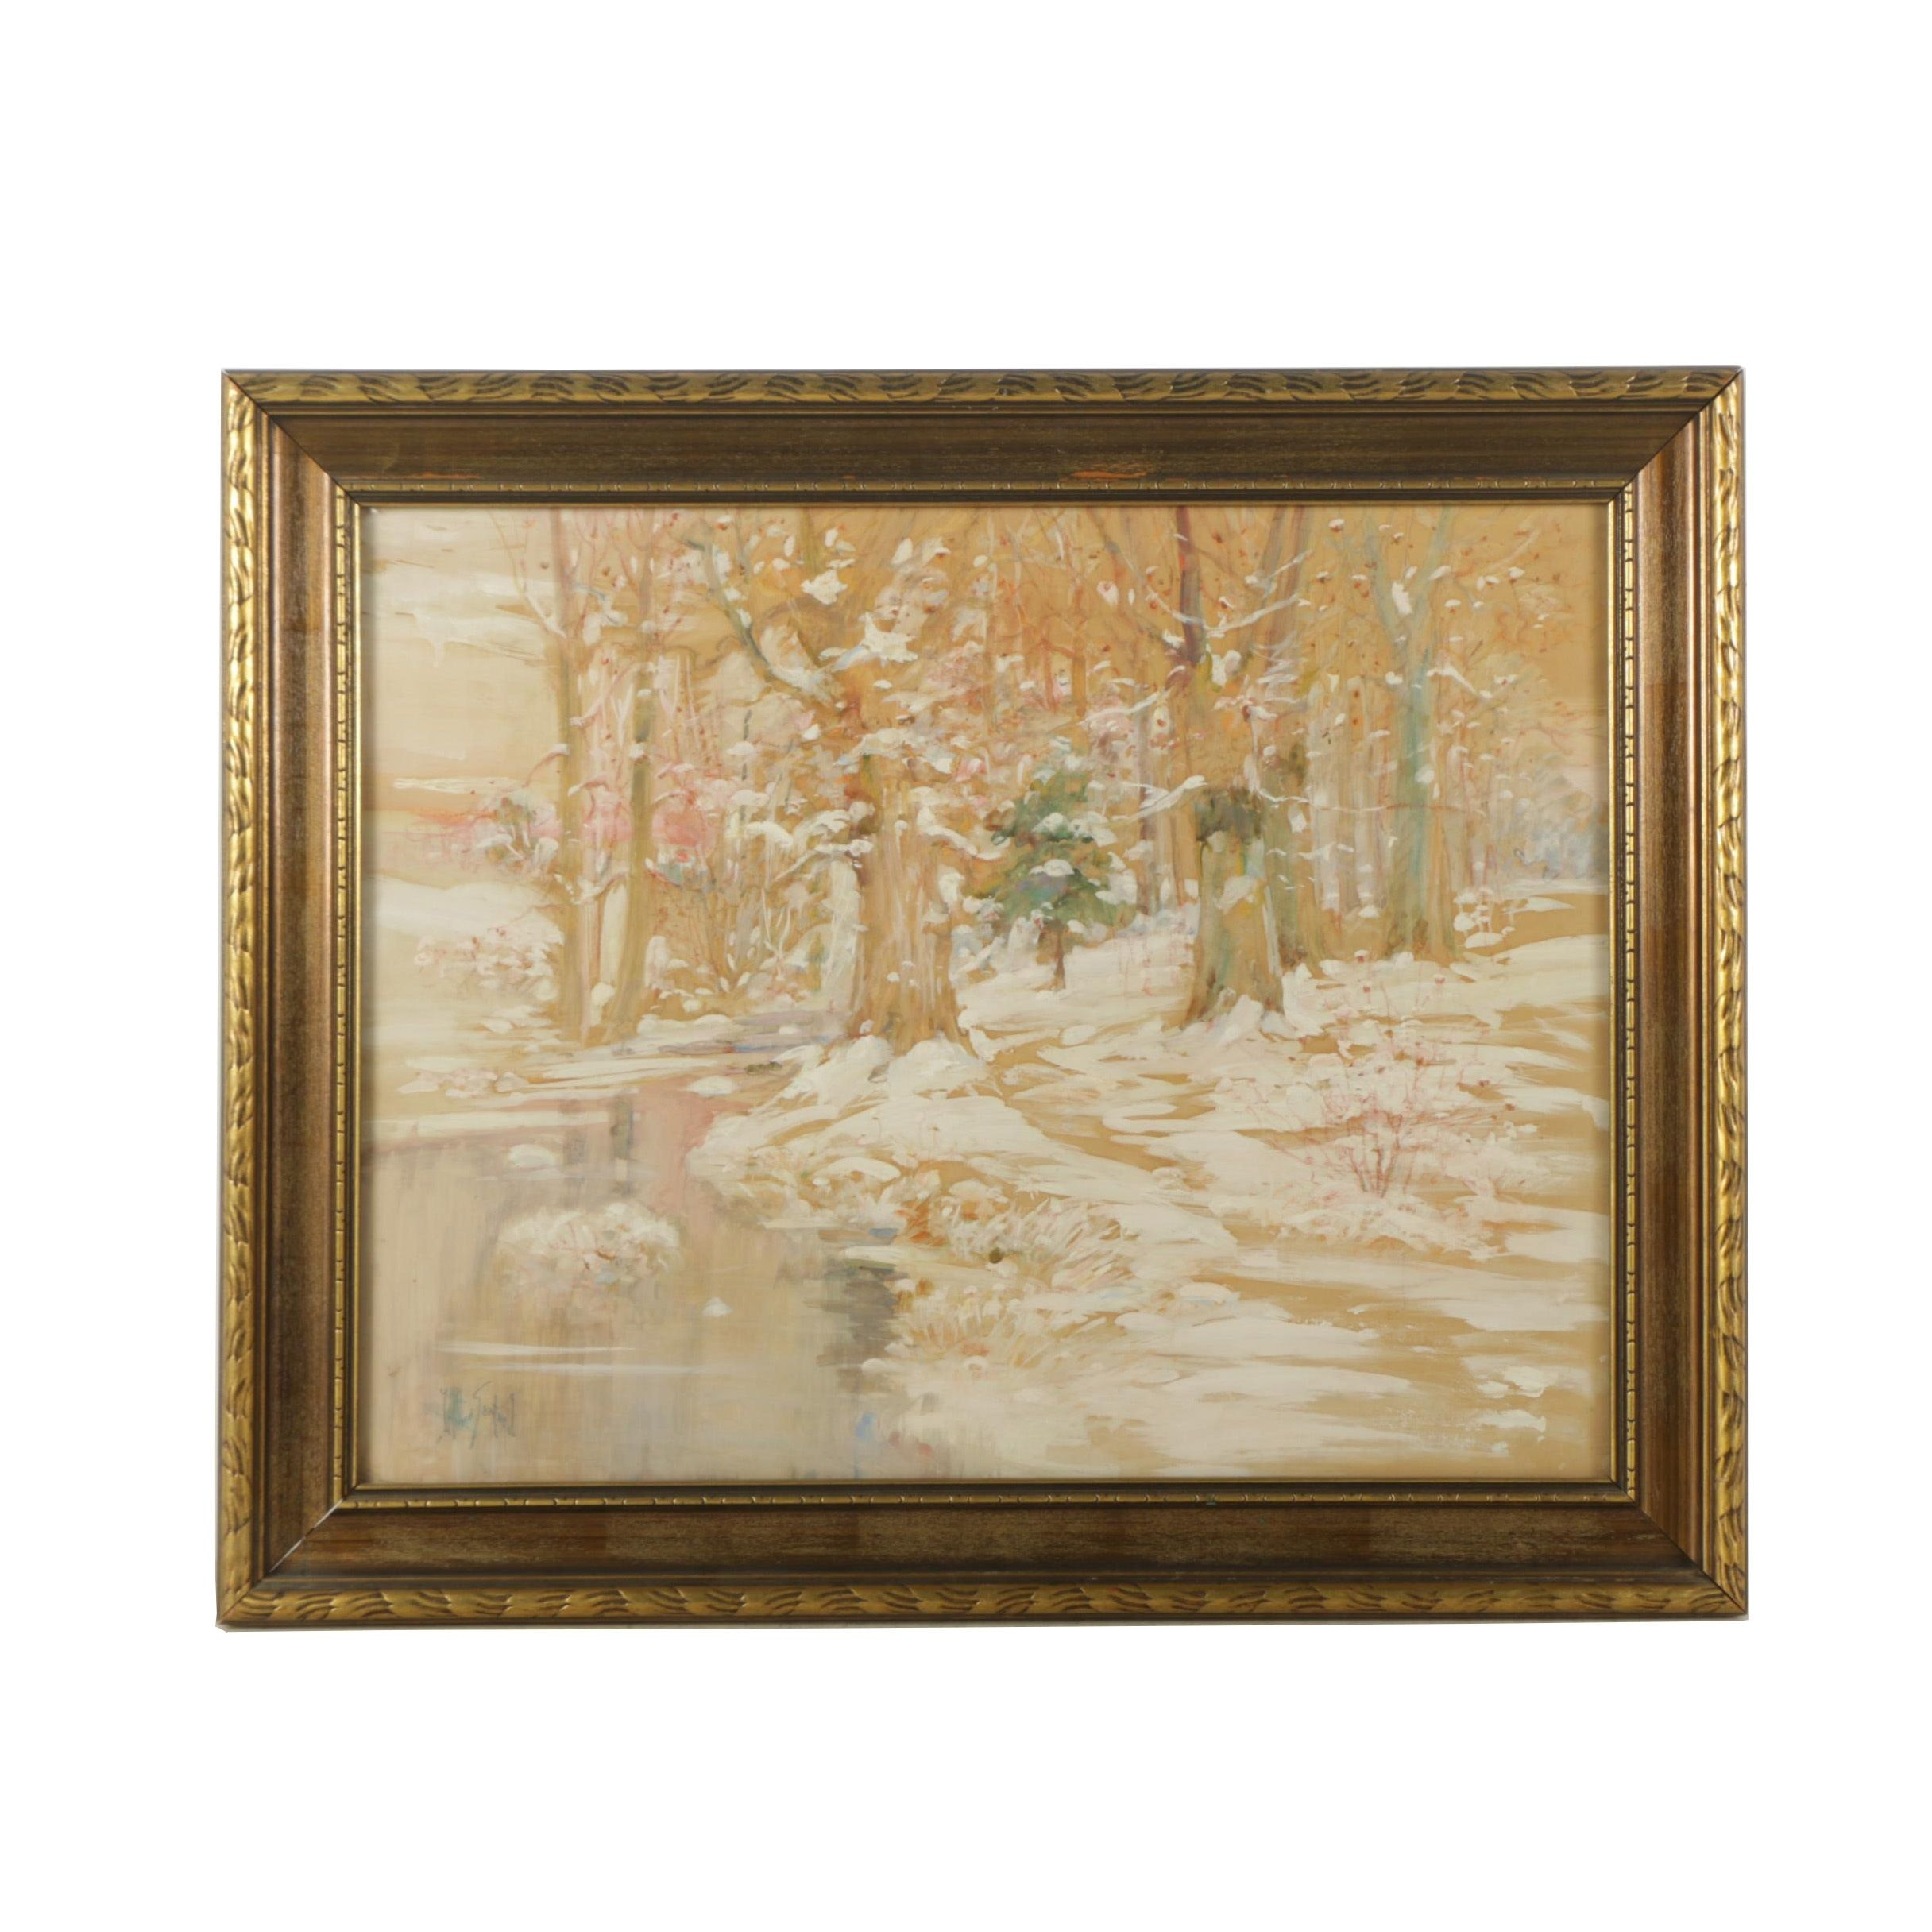 John Albert Seaford Mixed Media Painting on Paper of Snowy Landscape